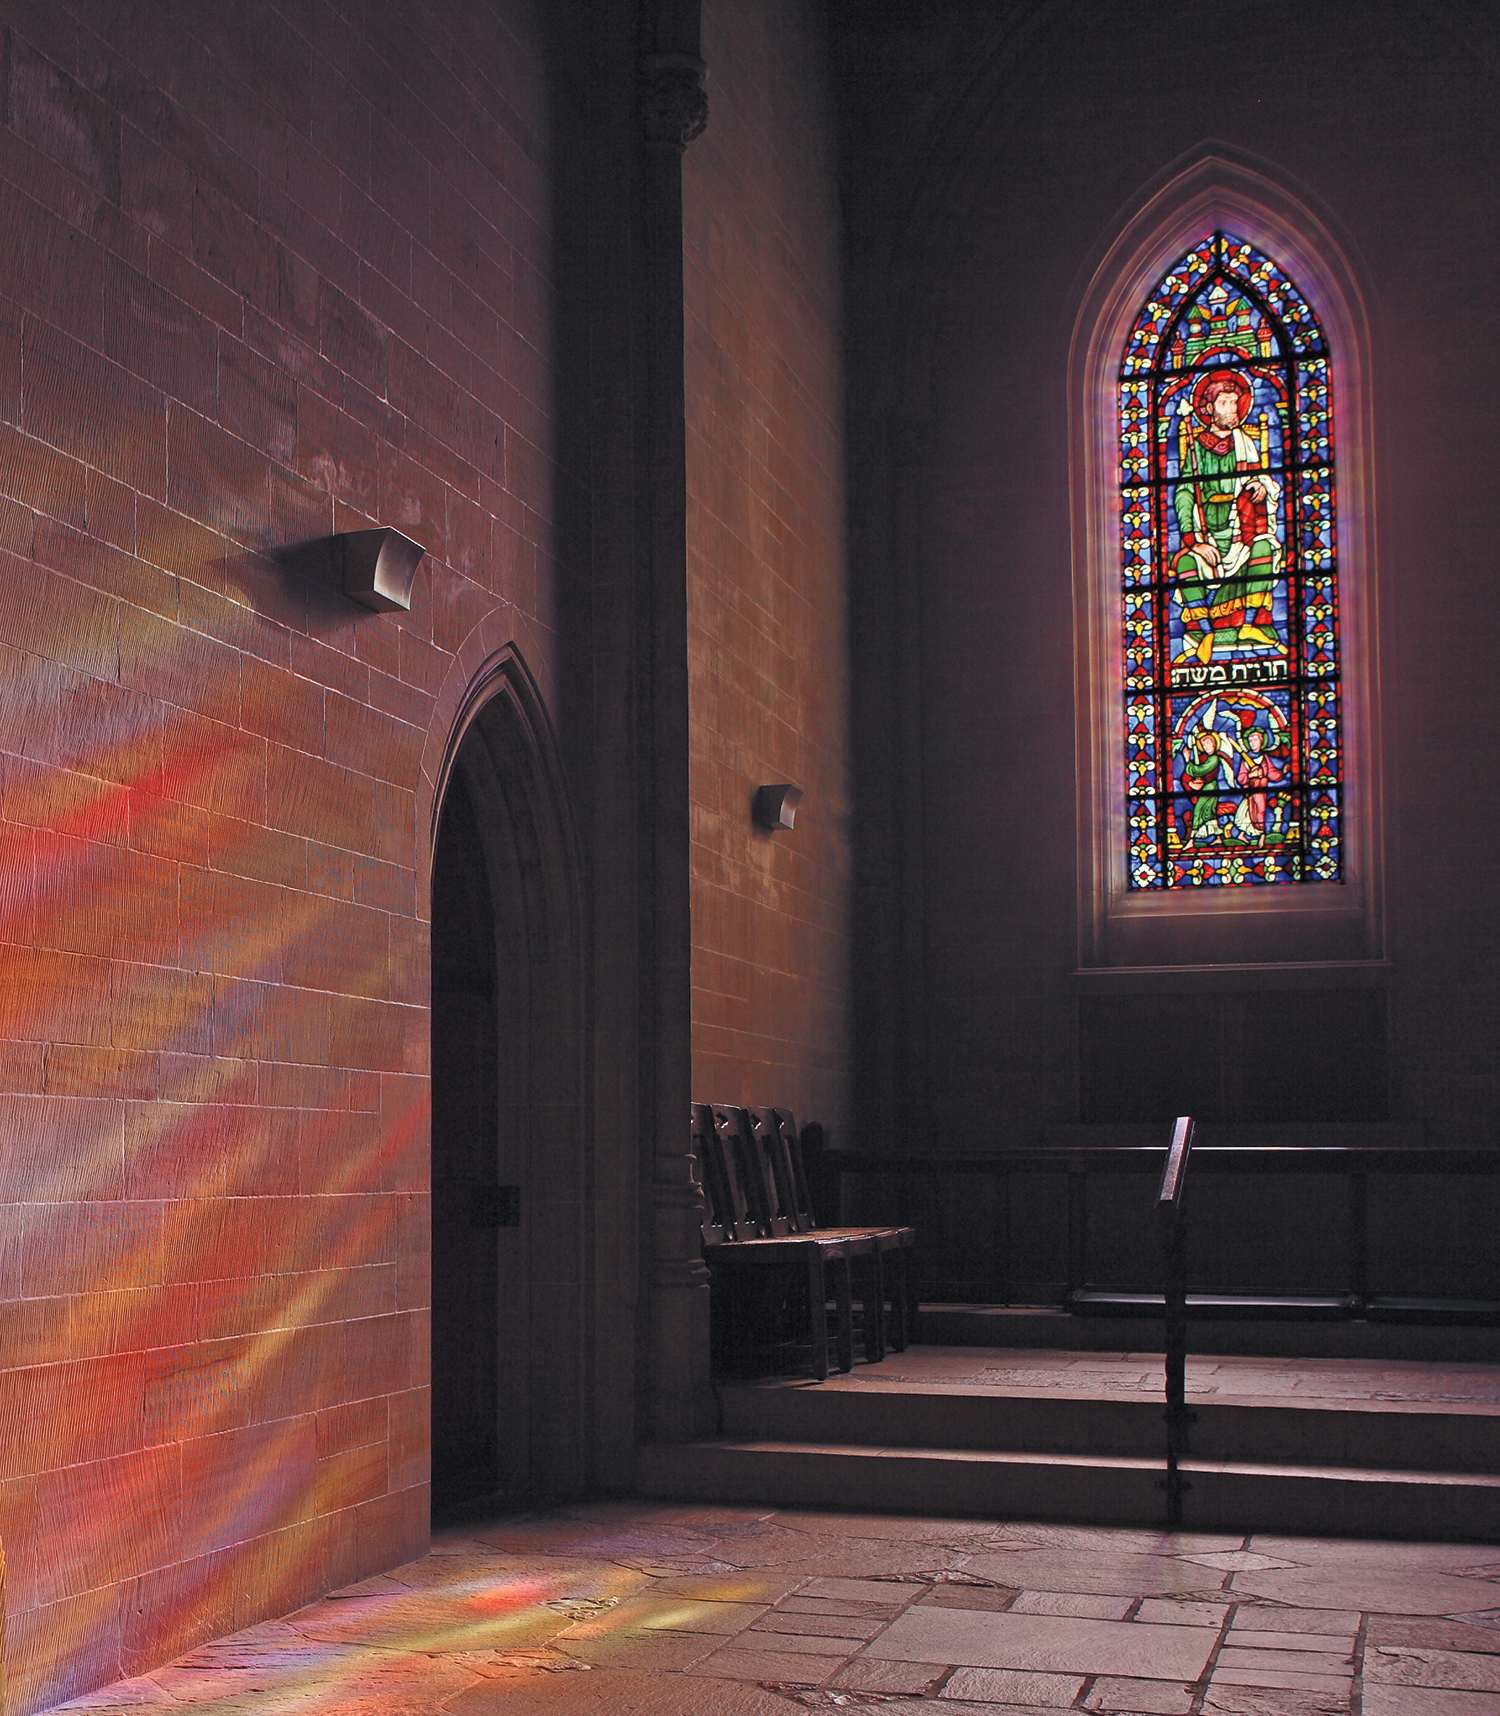 Figure 6: Light streams through the north chancel aisle window in Bryn Athyn Cathedral, bathing the sandstone wall in a rainbow of colors. The window was designed and made in the Bryn Athyn glassworks. Photograph by Hal Conroy.